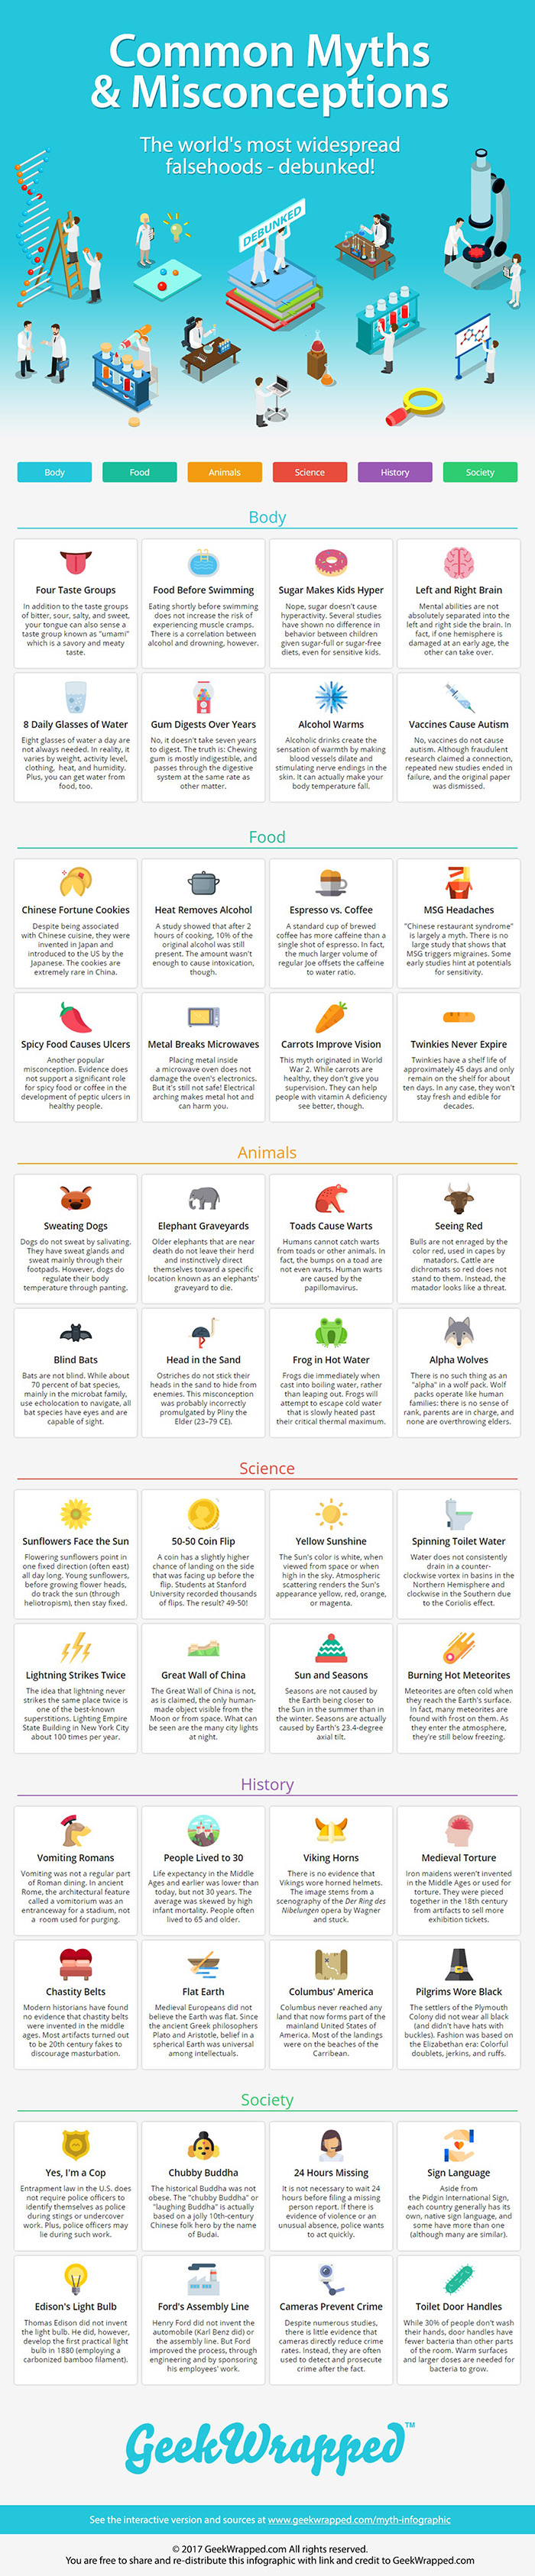 599ade5d6dd4d50001b9edd6 Myths Misconceptions Infographic SHORT